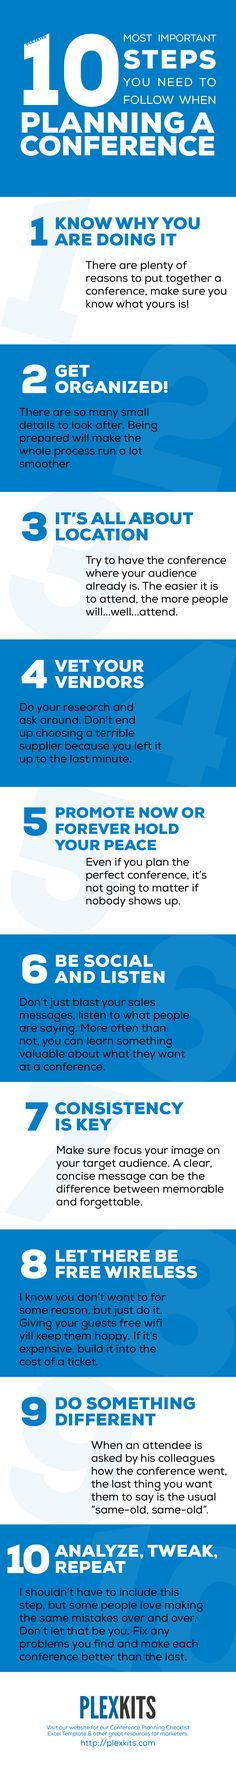 10 Most Important Steps You Need to Follow When Planning a Conference Infographic | PLEXKITS http://plexkits.com/10-steps-planning-a-conference/